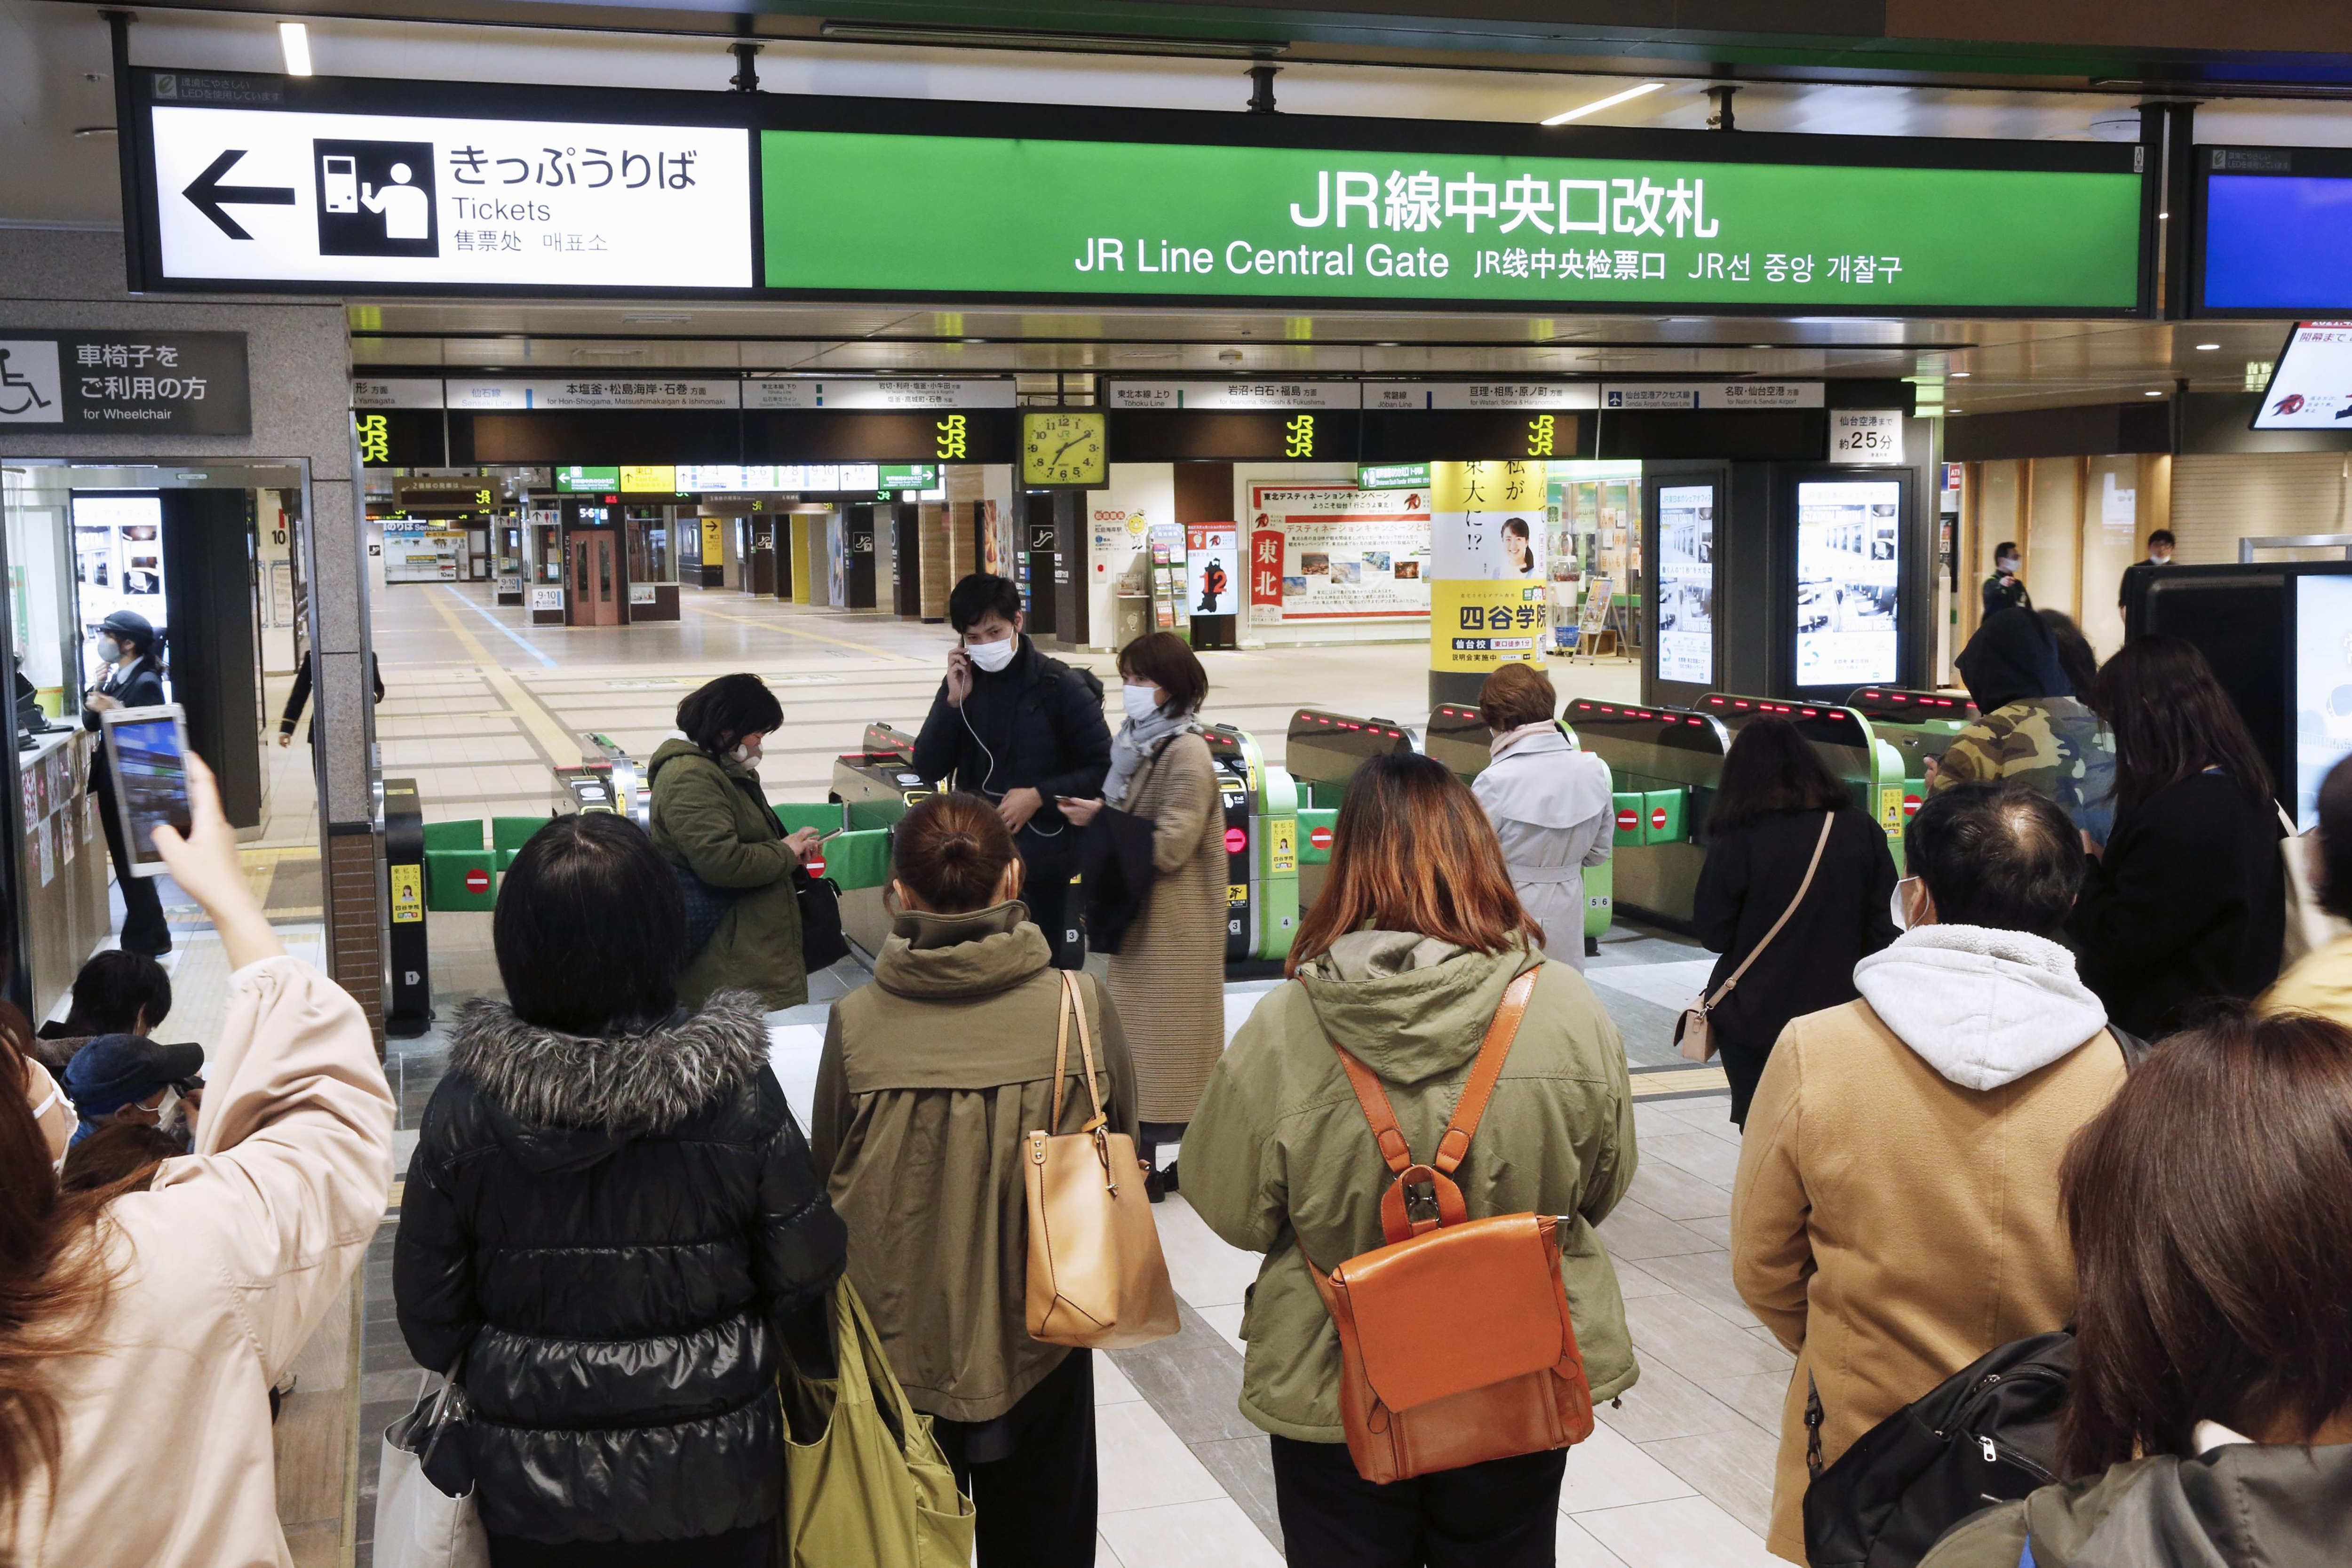 People gather in front of a ticket gate at a station as train services are suspended following an earthquake in Sendai, Miyagi prefecture, Japan, on March 20, 2021.